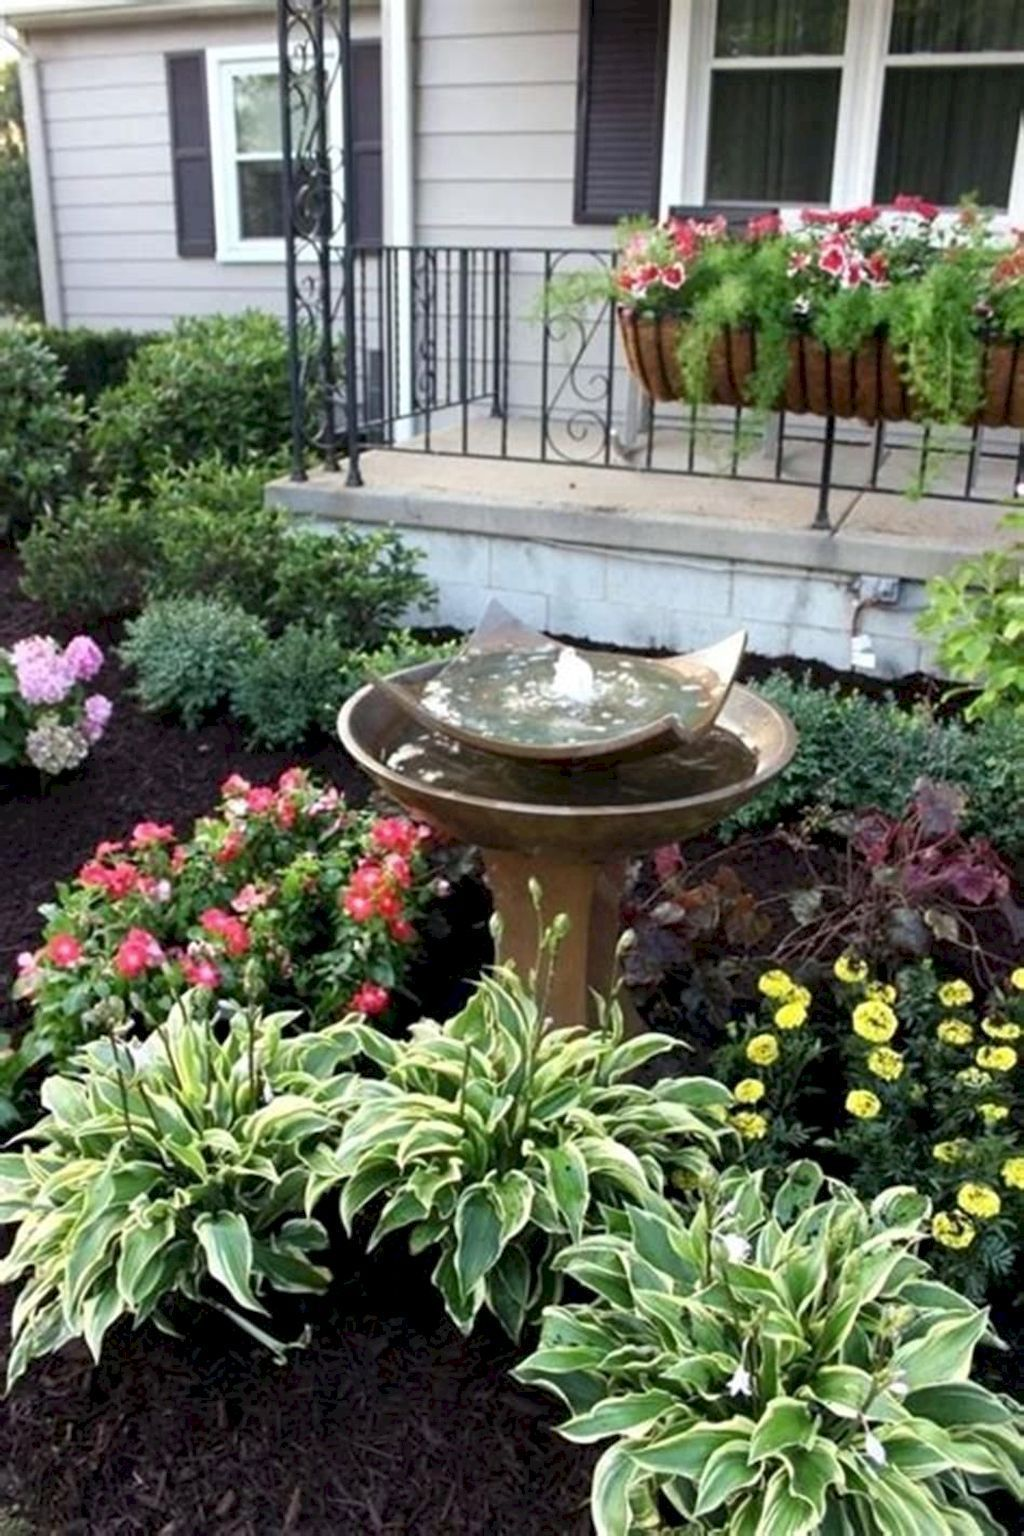 Cheap Landscaping Ideas For Your Front Yard That Will Inspire You Cheap Landscaping Ideas For Front Yard Front Yard Landscaping Design Cheap Landscaping Ideas